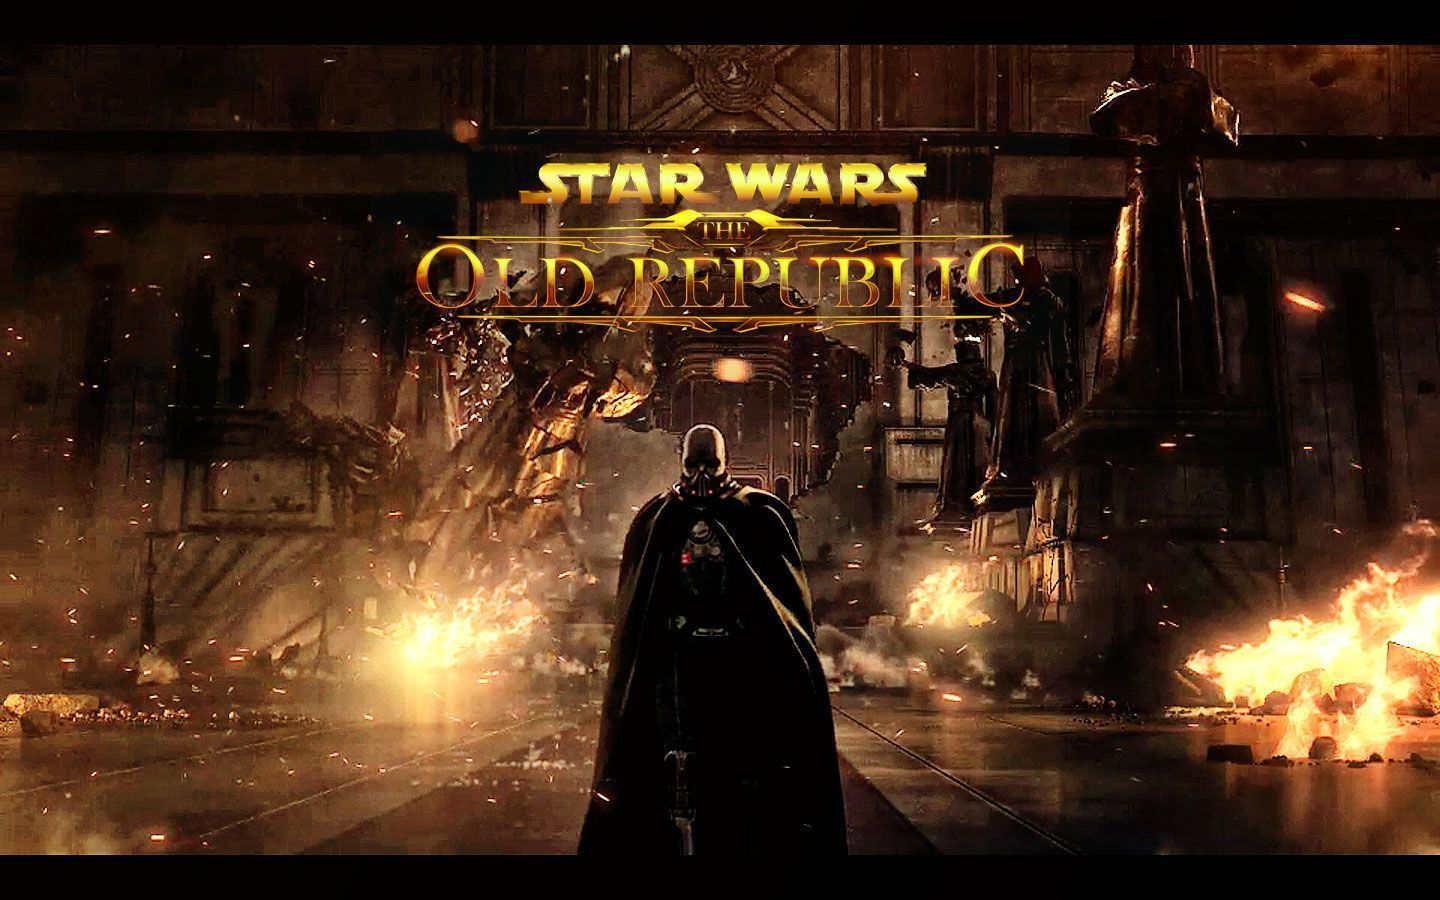 Star Wars The Old Republic Wallpapers Wallpaper Cave Star Wars The Old Star Wars Awesome The Old Republic